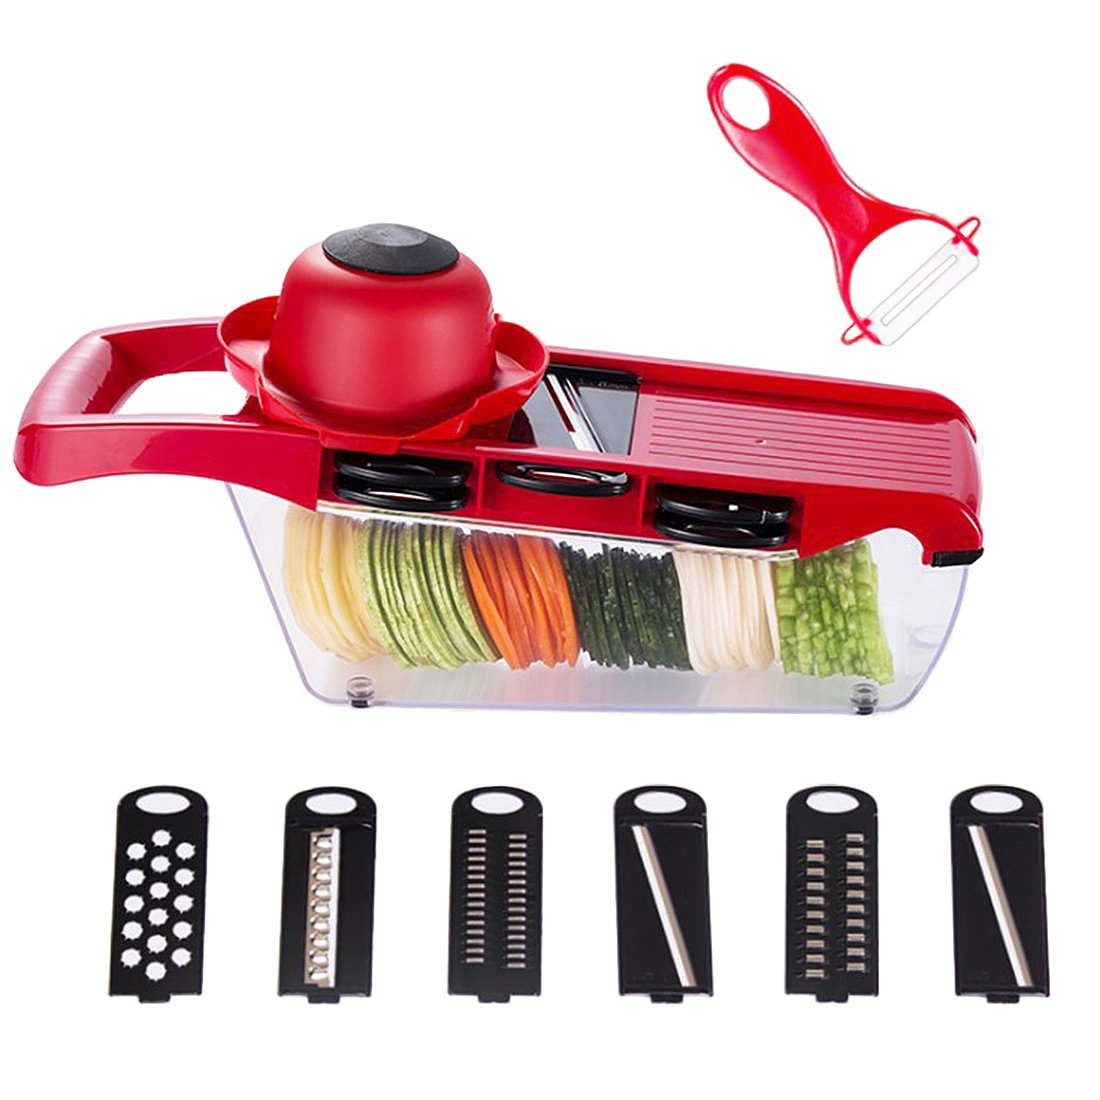 Mandoline Vegetable Slicer Cutter Food Processor 6 Interchangeable Blades 1 Peeler Hand Guard Finger Protector Storage Container Vegetable Cutter Grater Chopper for Potato Tomato Onion